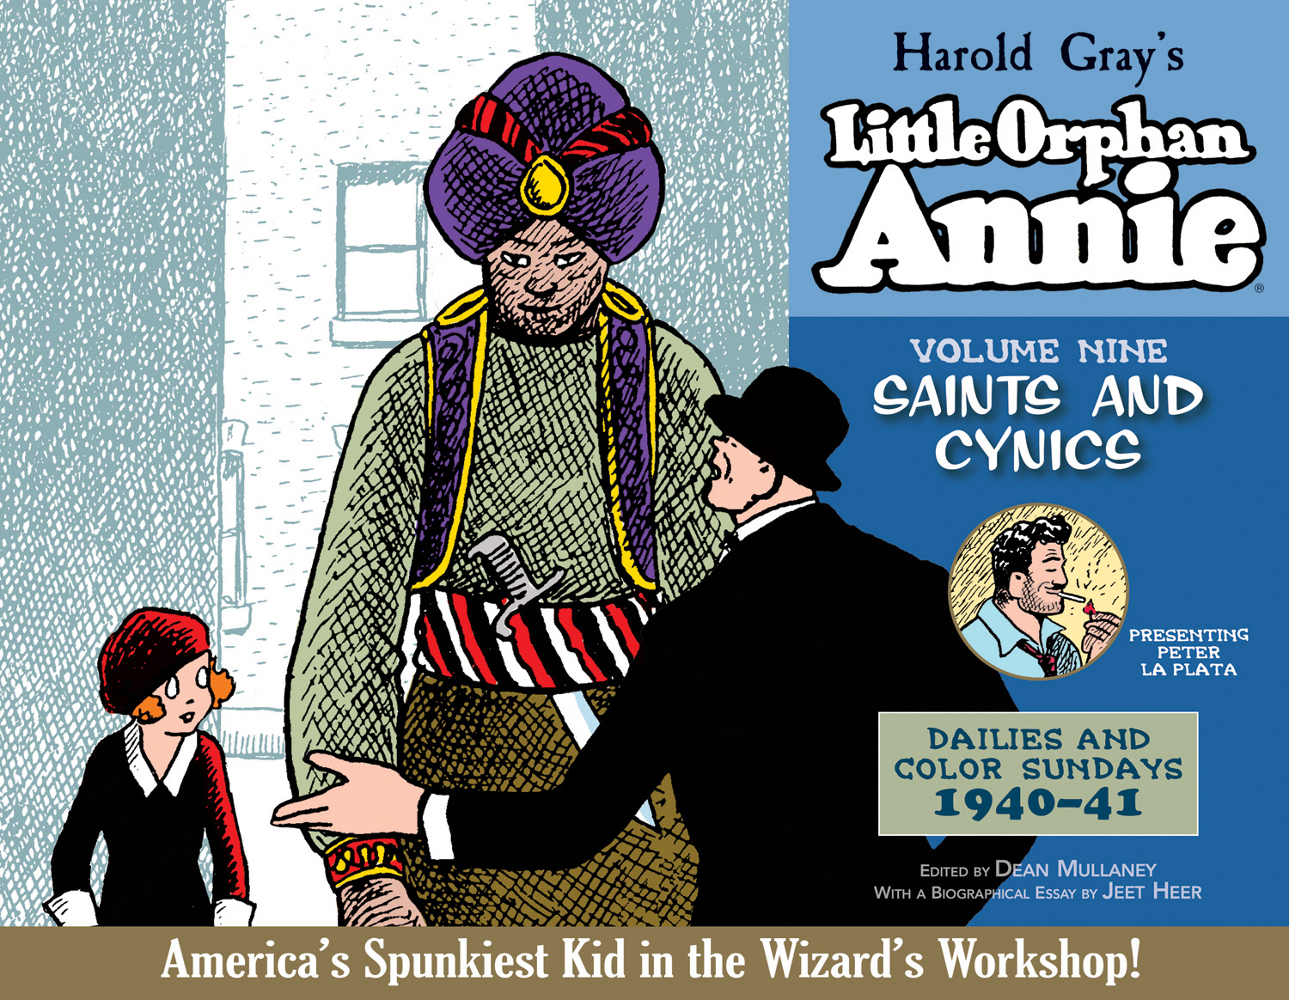 CompleteLittleOrphanAnnie Vol9 IDW PUBLISHING Solicitations for FEBRUARY 2013